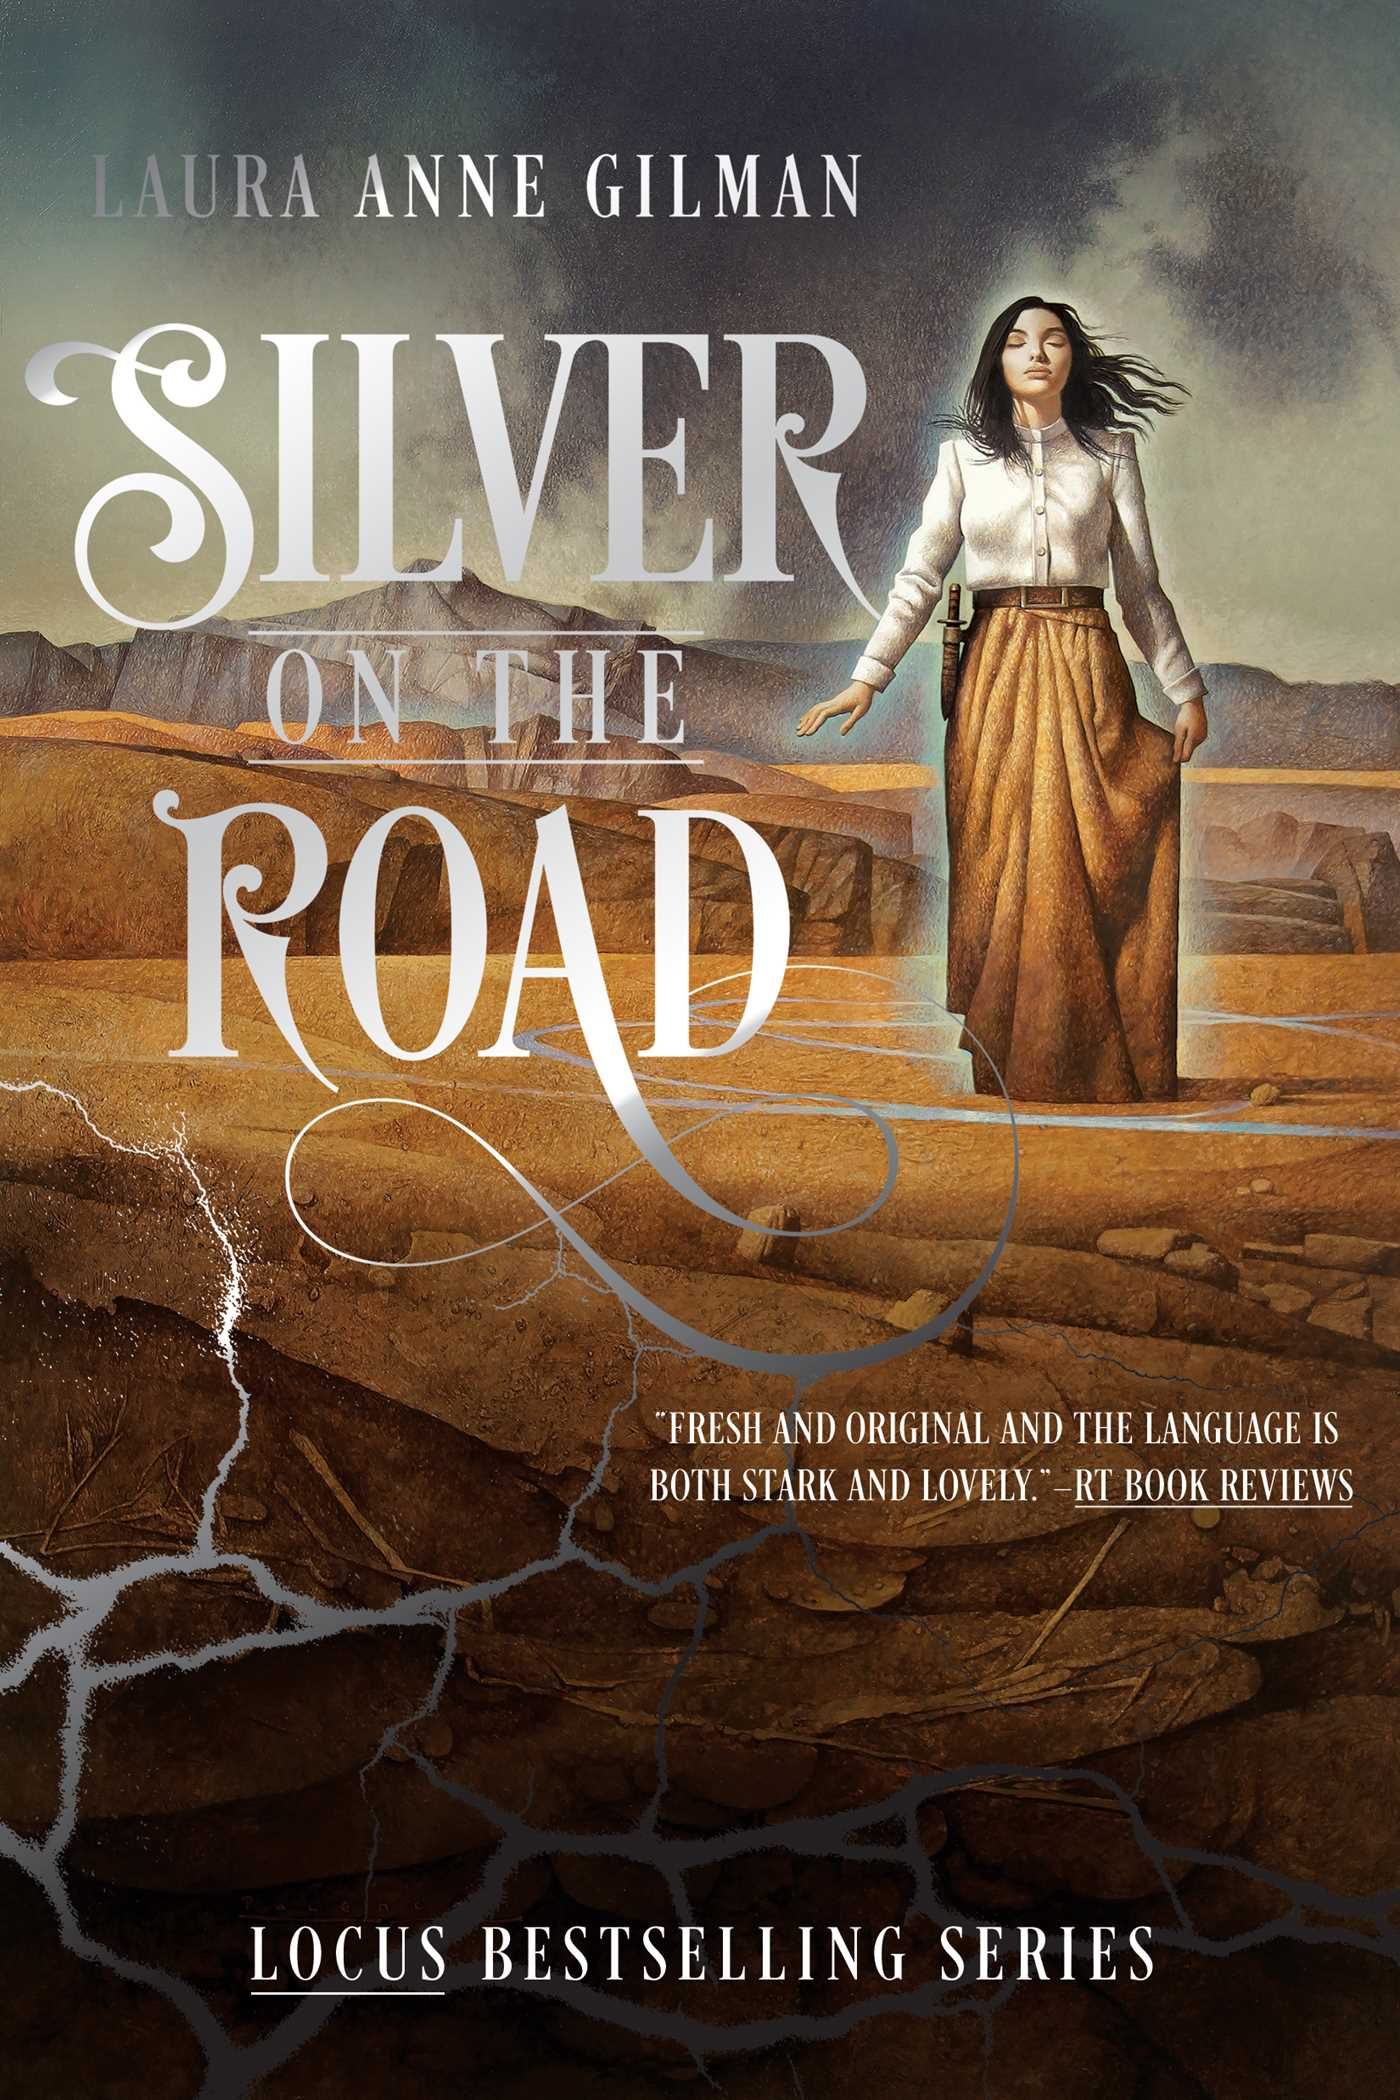 Image result for book cover silver on the road gilman